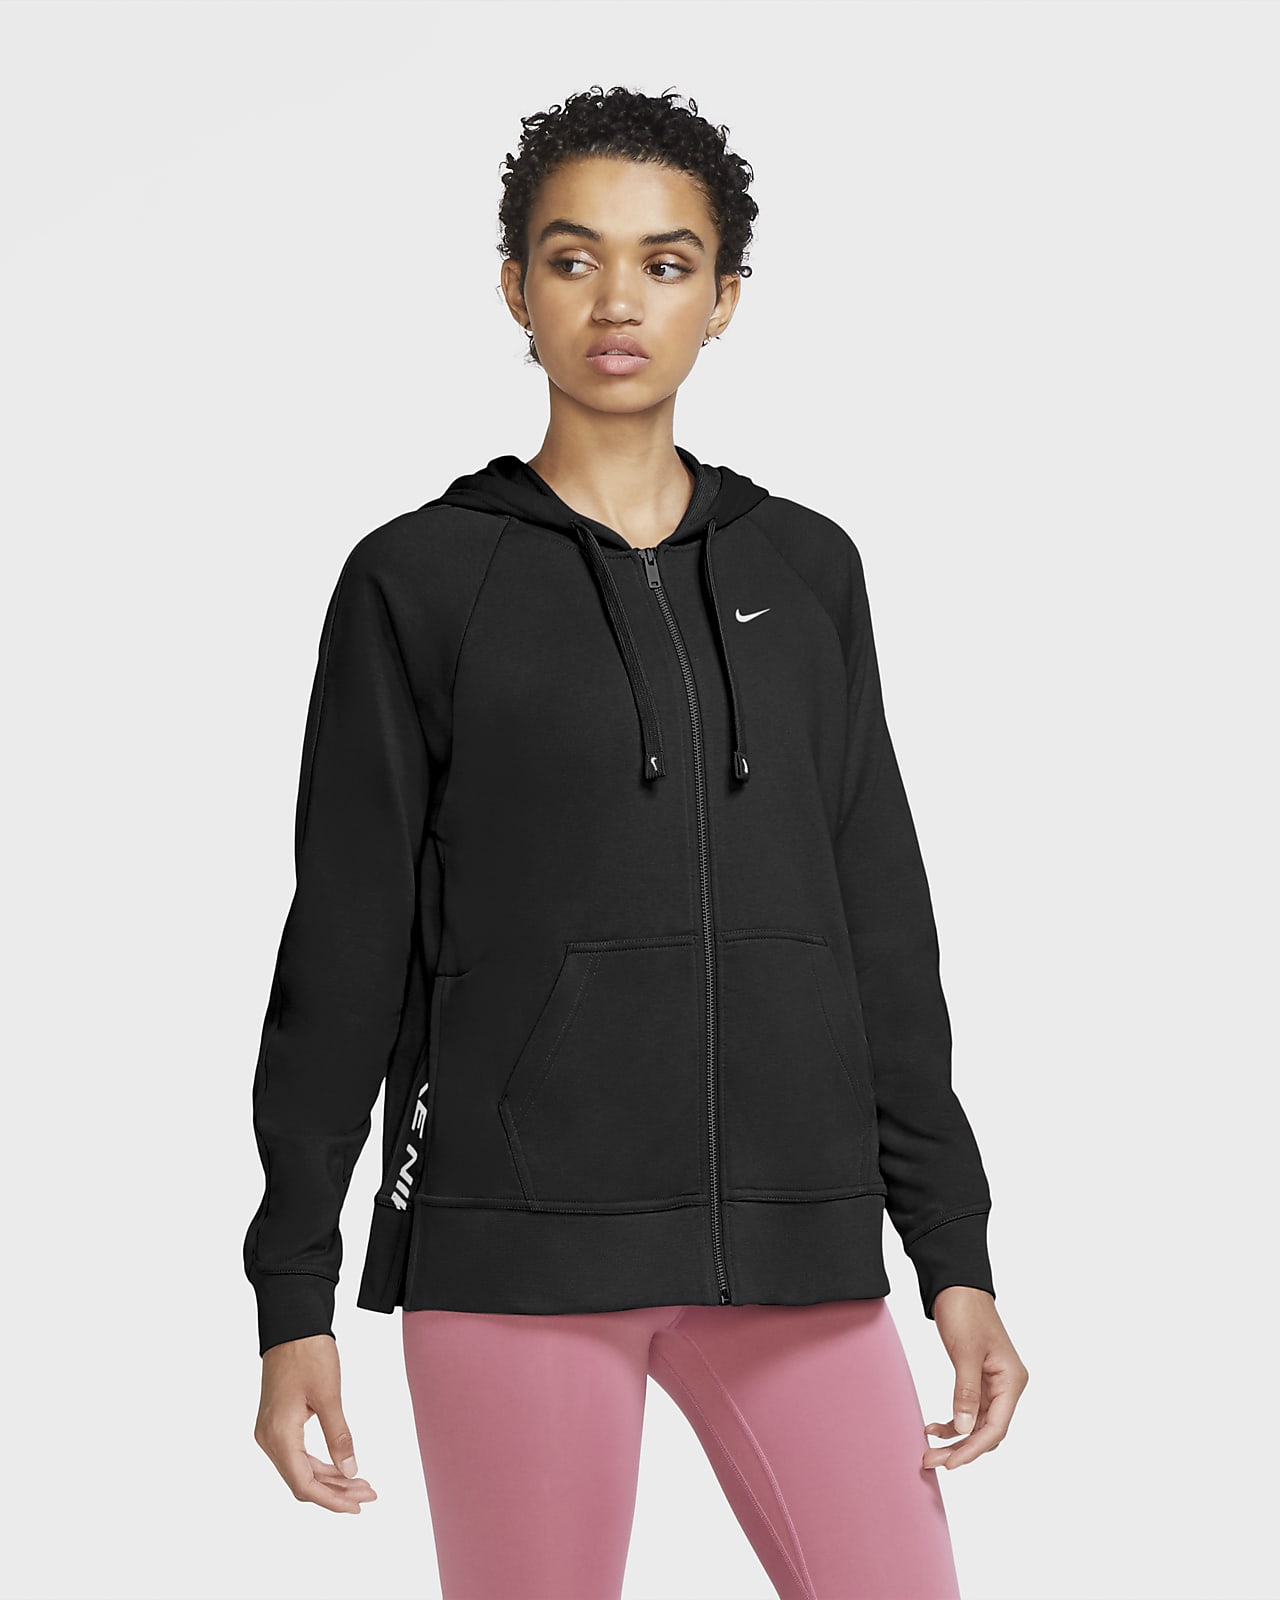 Nike Dri Fit Get Fit Women S Full Zip Training Hoodie Nike Com Use your logo or own design. nike dri fit get fit women s full zip training hoodie